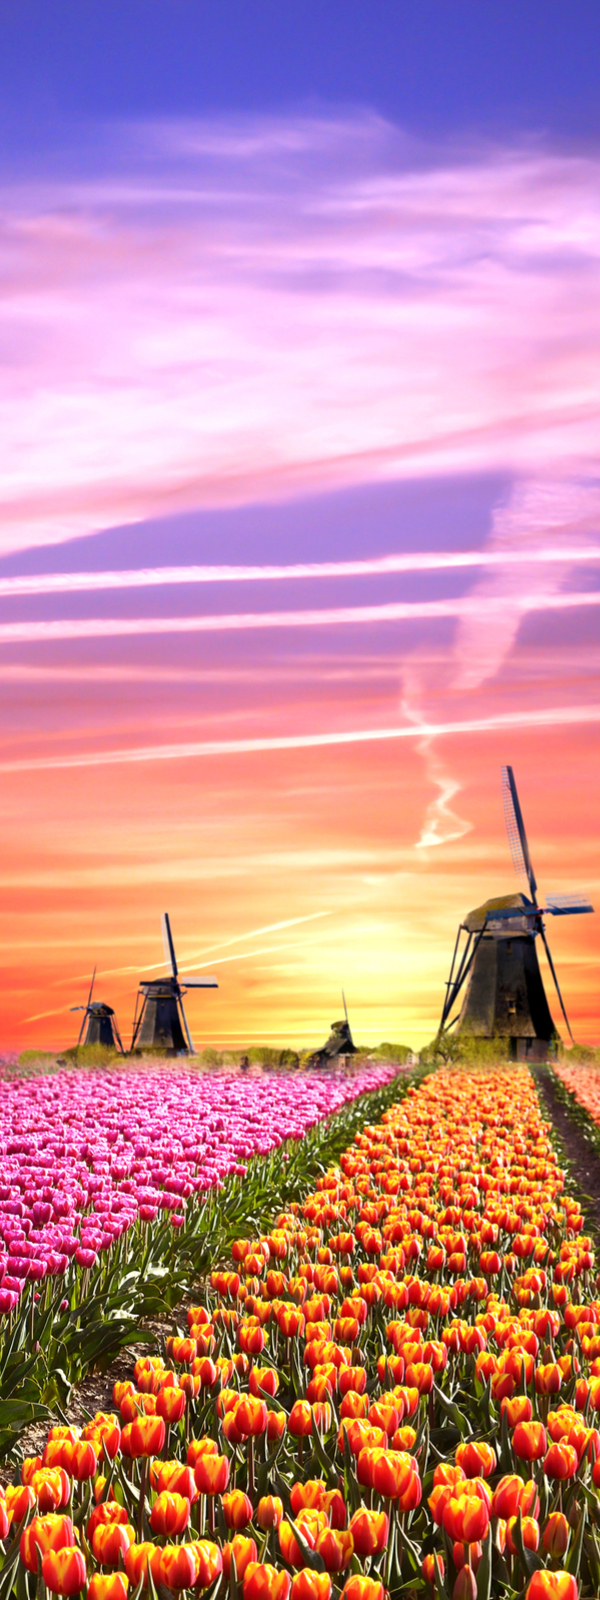 Windmills and tulips at sunrise, Netherlands